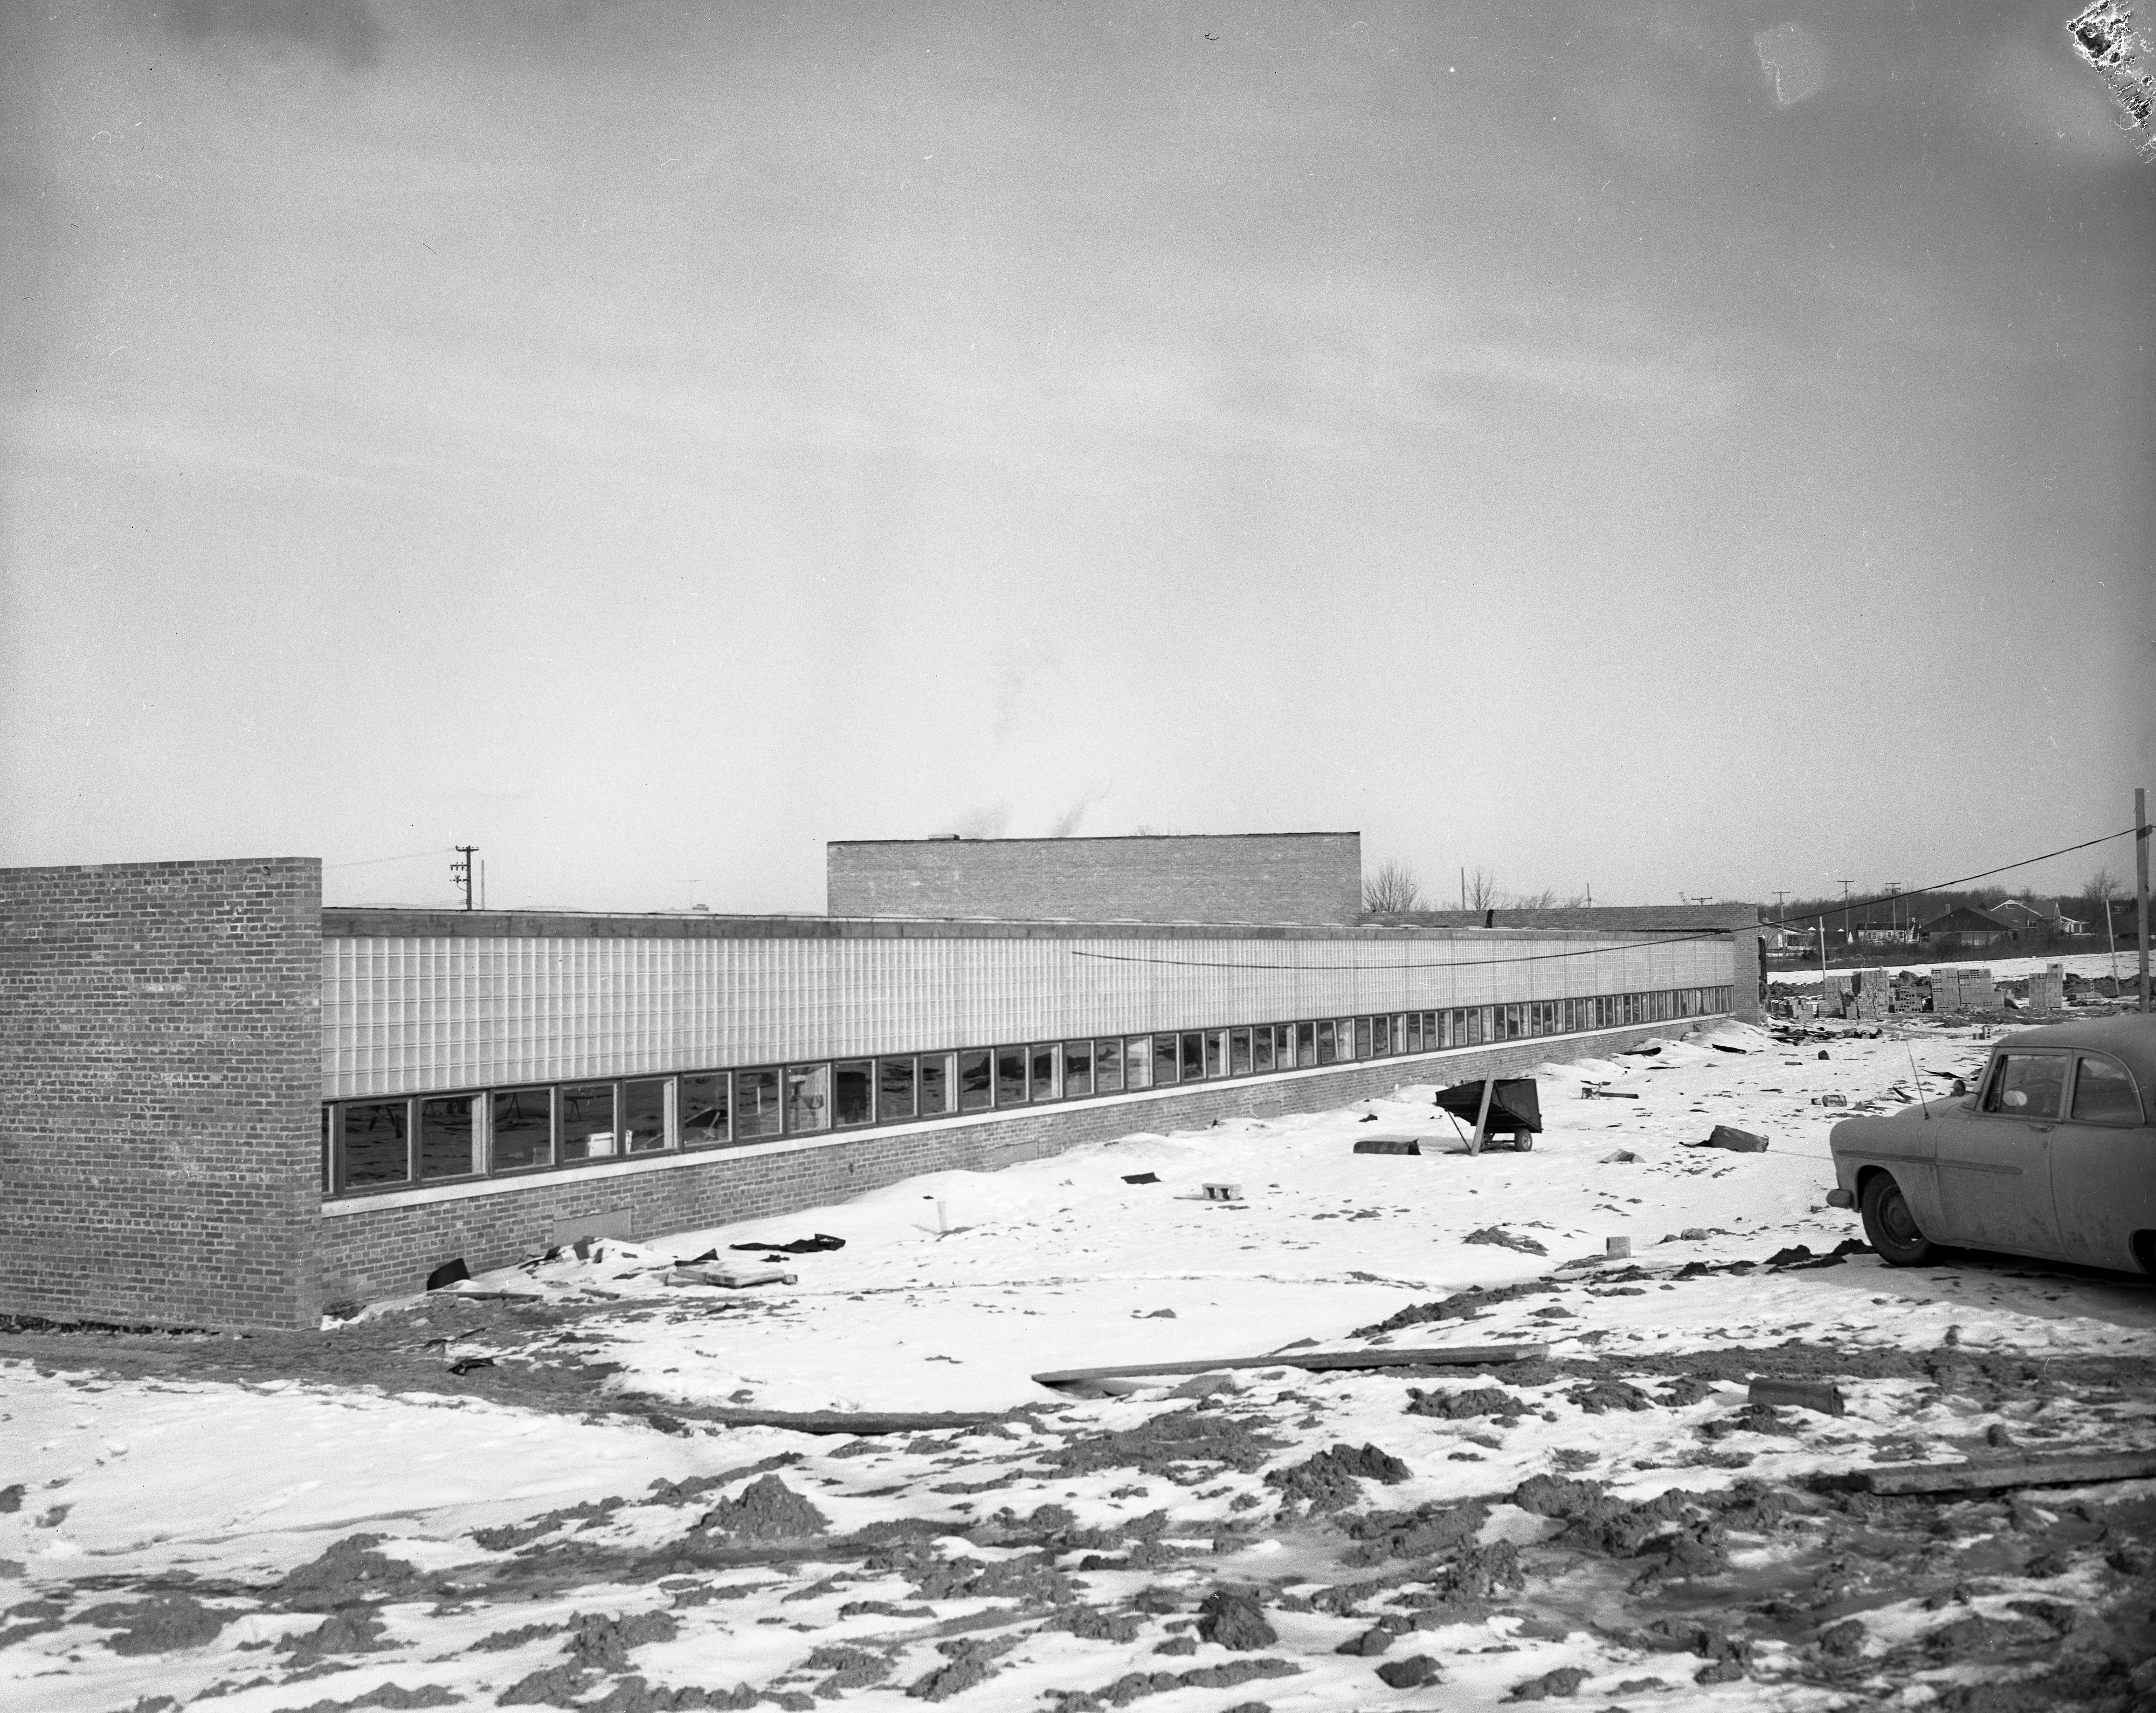 New Judson G. Pattengill School On Ann Arbor's South Side, February 1957 image